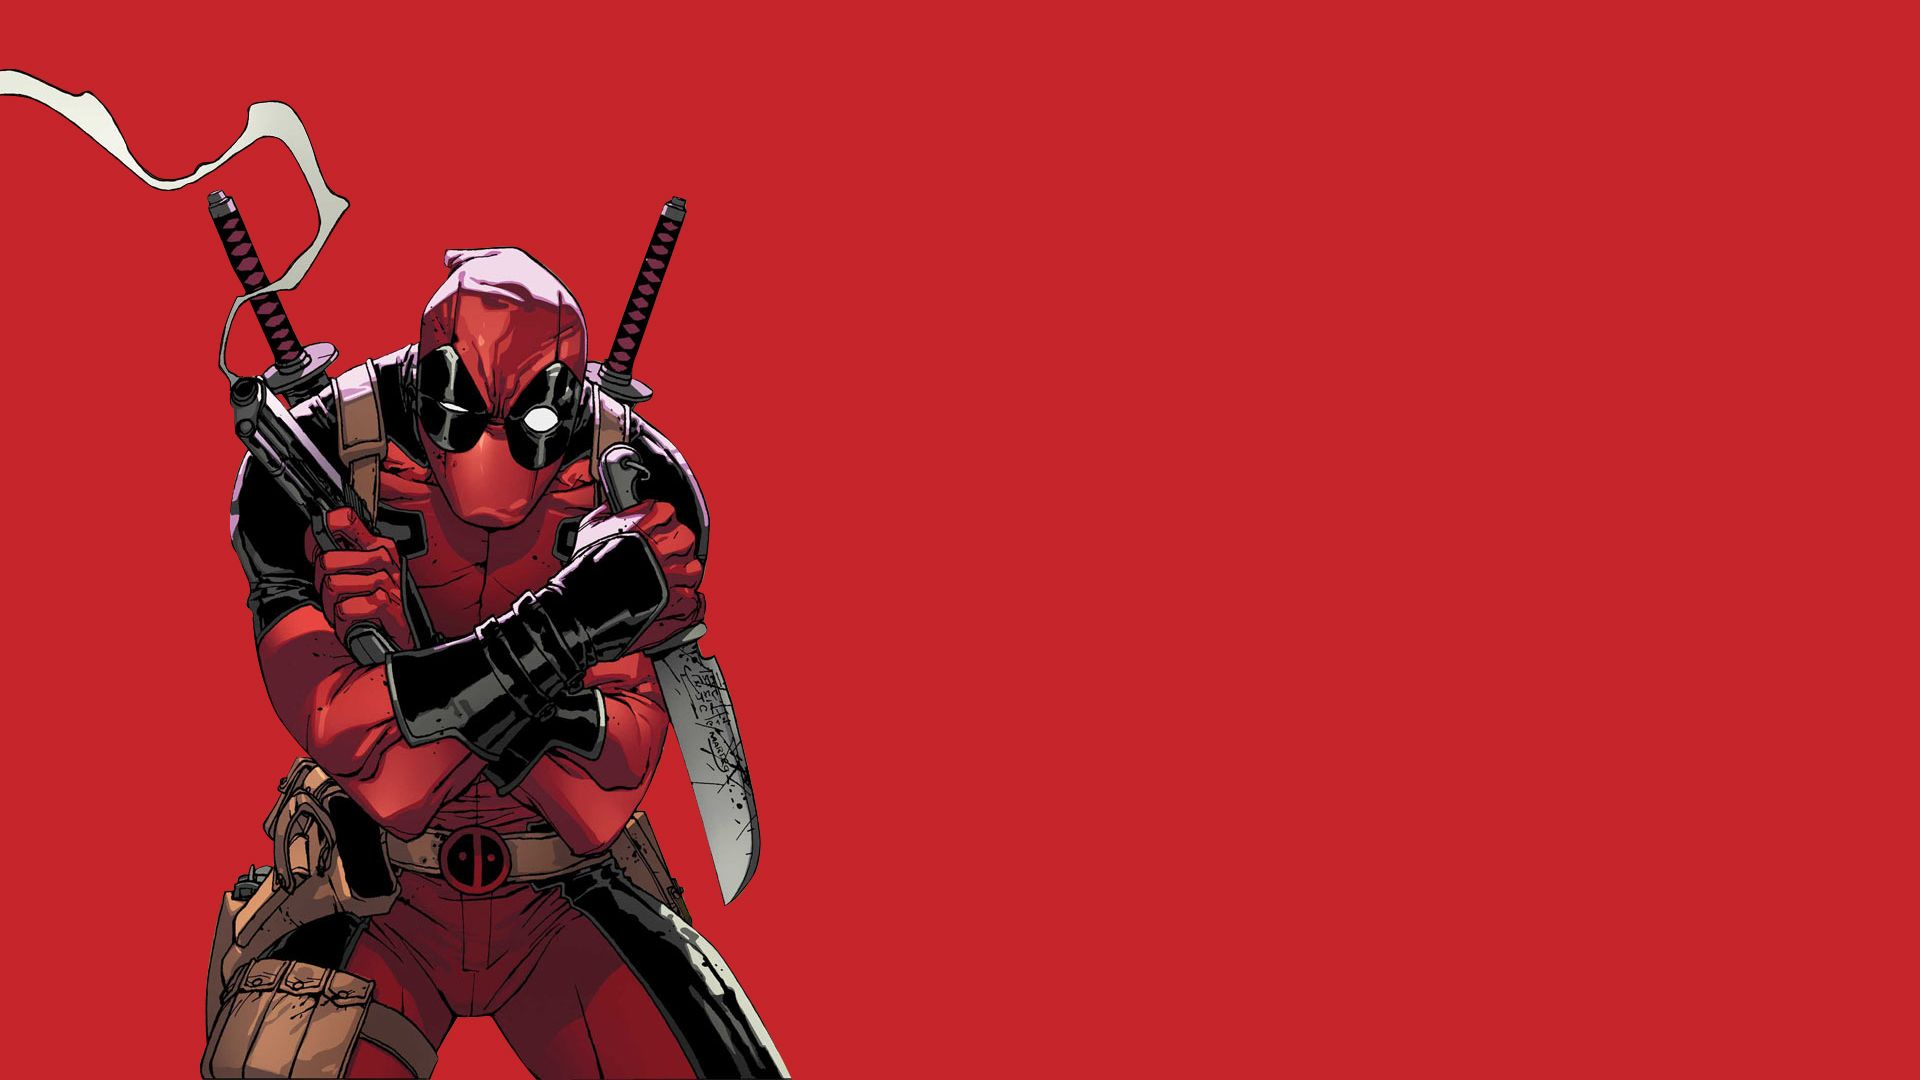 Funny Deadpool Desktop Wallpapers - Top Free Funny Deadpool Desktop